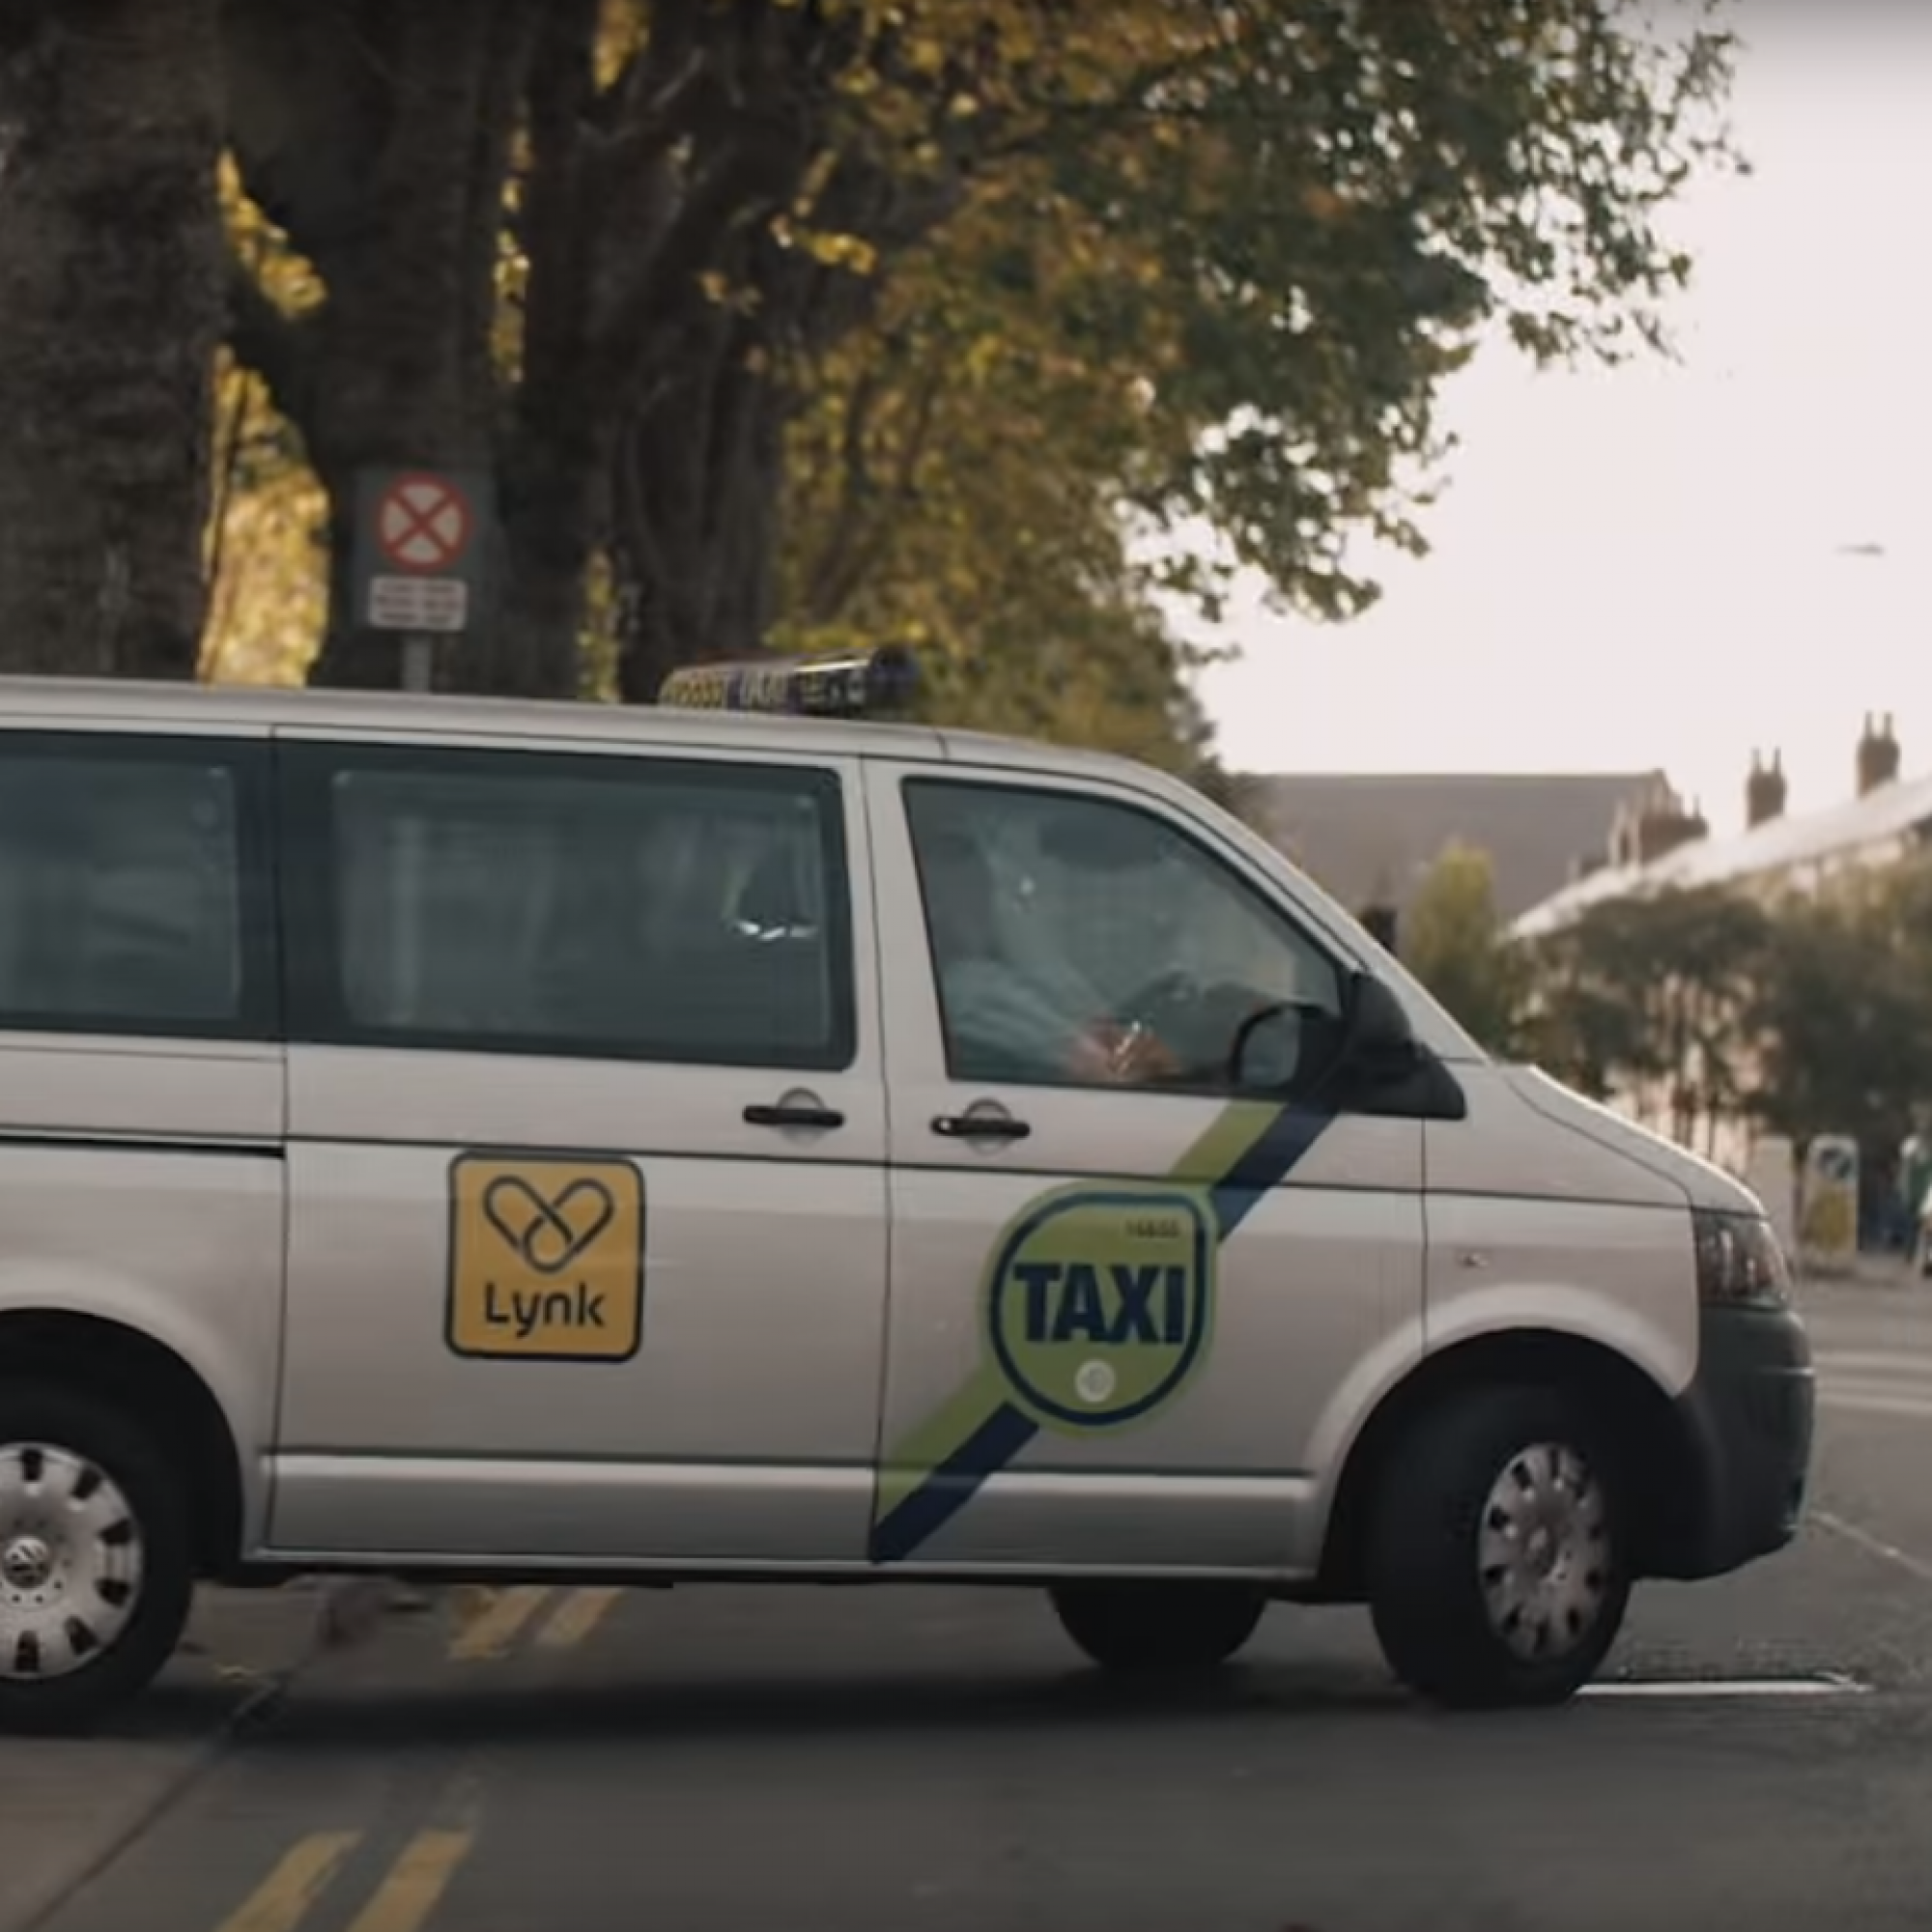 Irish taxi app Lynk to become a 'Riide' in push for global success